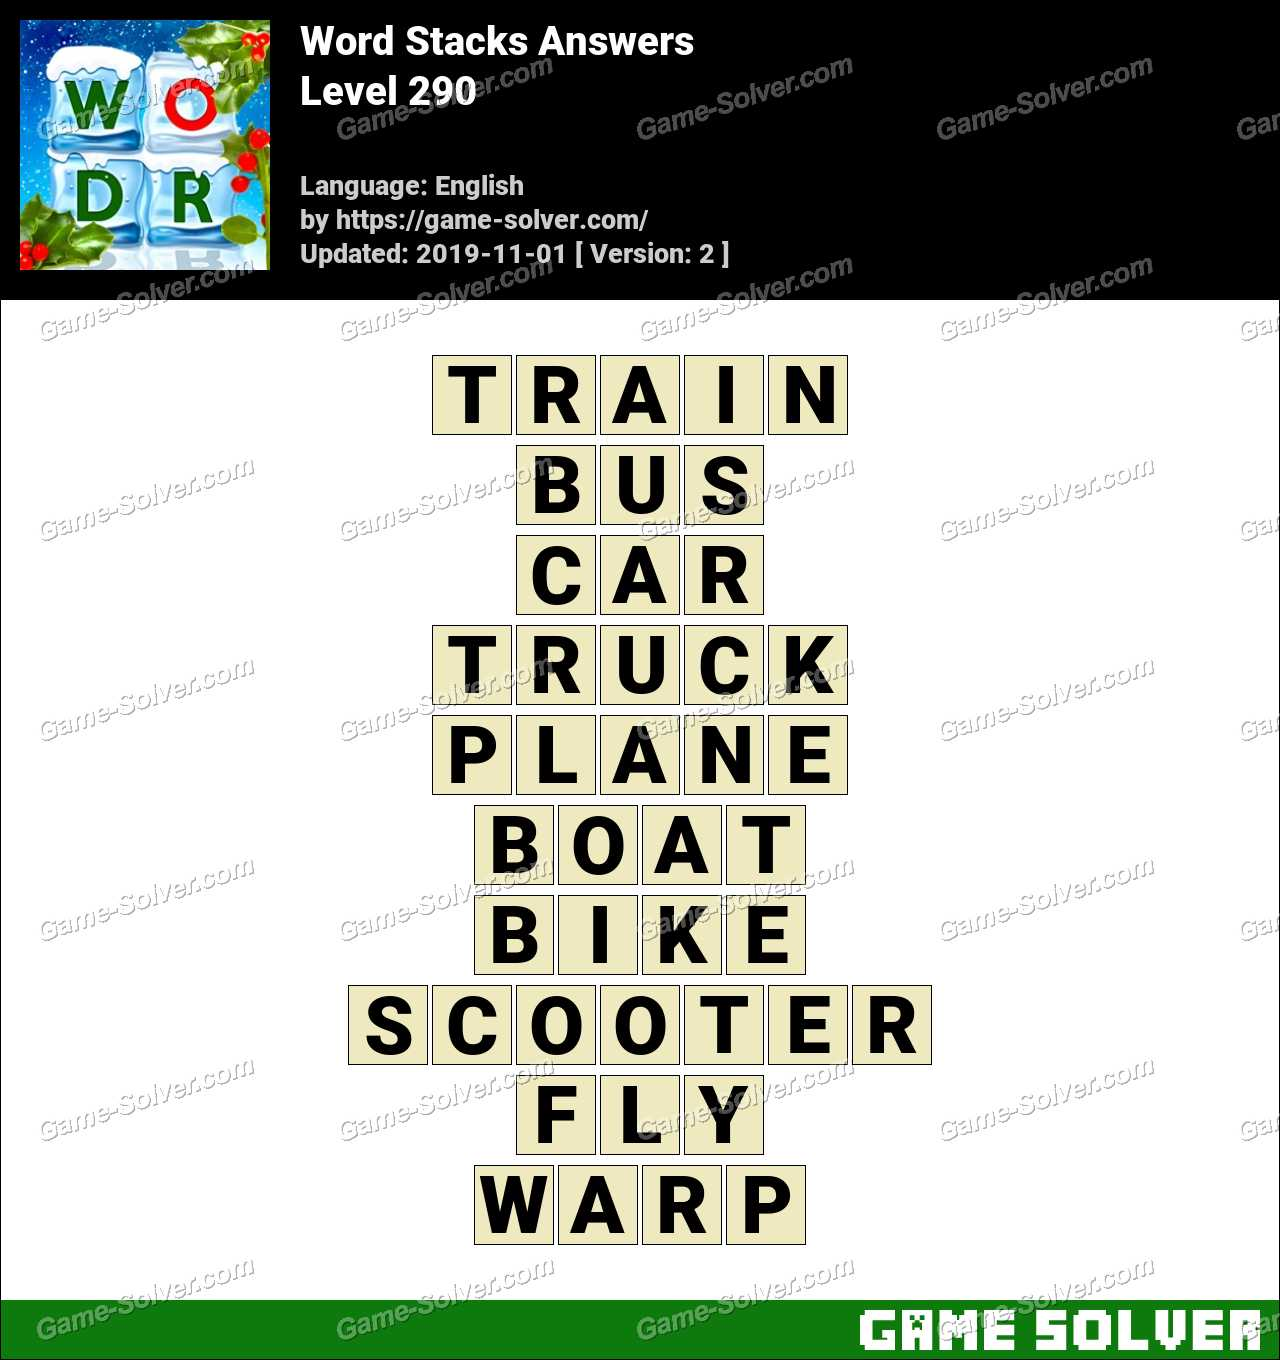 Word Stacks Level 290 Answers